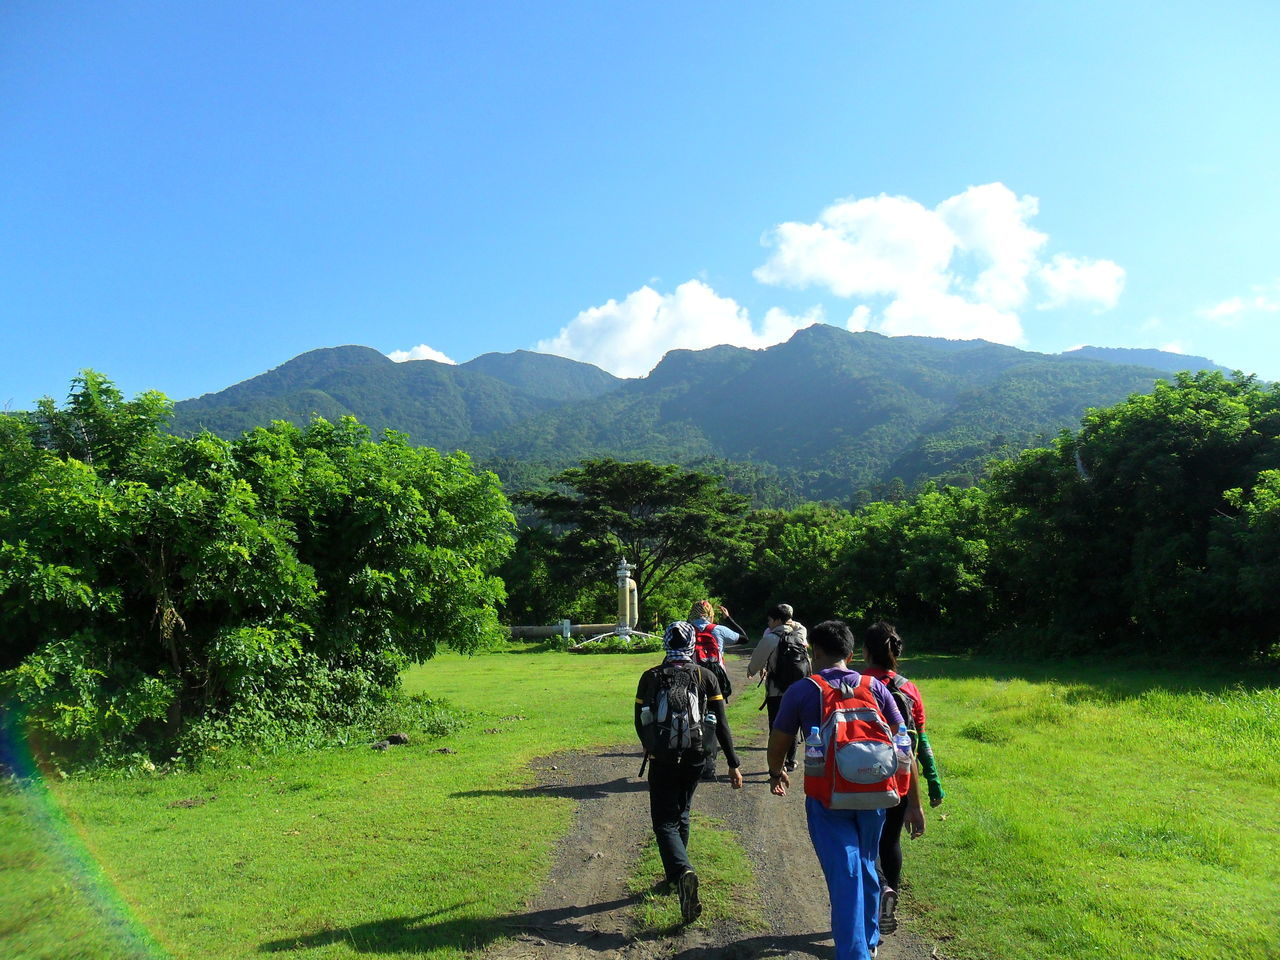 Growth Mountain Leisure Activity Grass Walking Outdoors Beauty In Nature Group Of People Friendship Philippines TravelPhilippines TrekkingDay Trekking Sky Nature Summer Travel Destinations